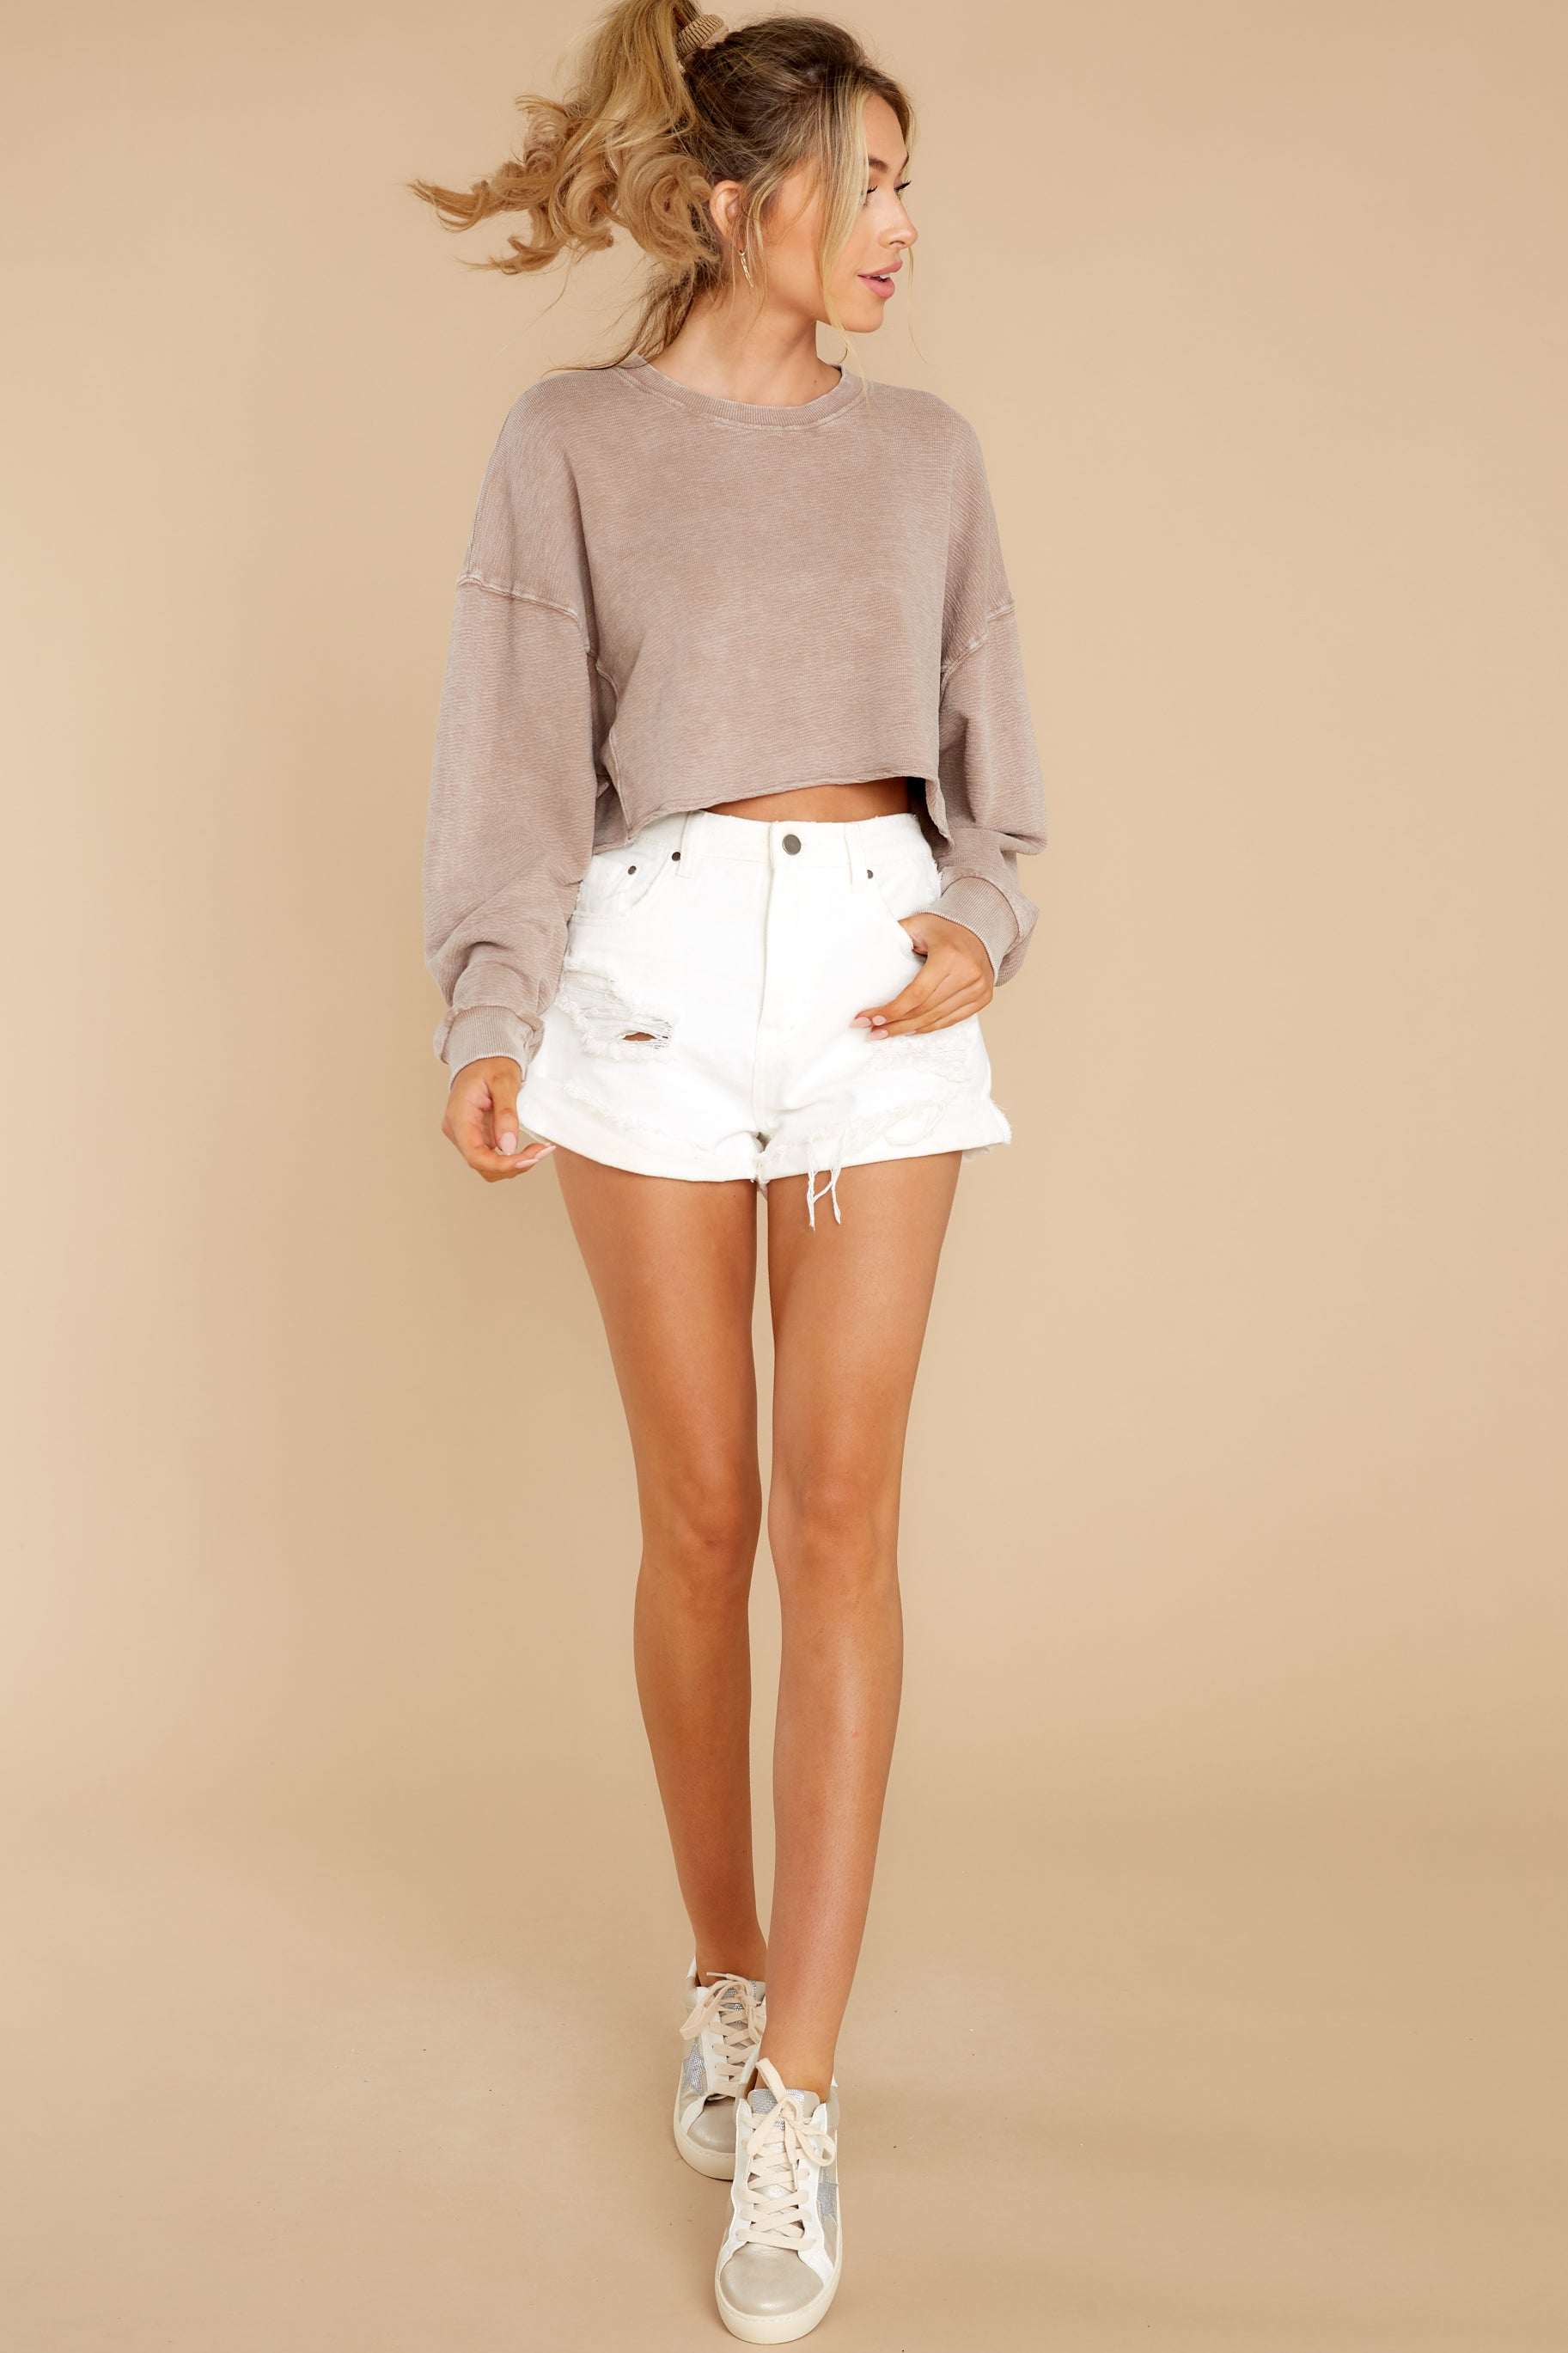 4  Anywhere With You Latte Crop Sweatshirt at reddress.com